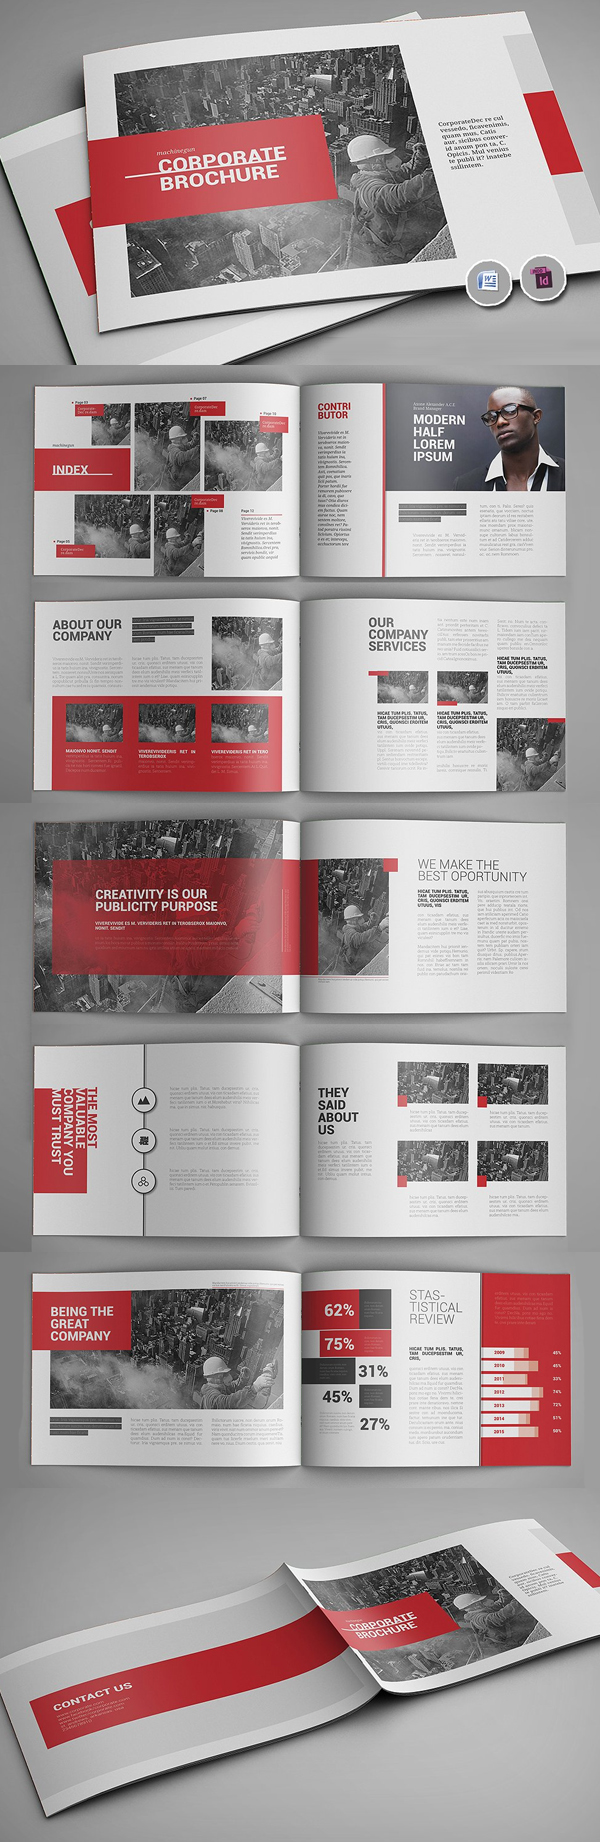 100 Professional Corporate Brochure Templates - 25